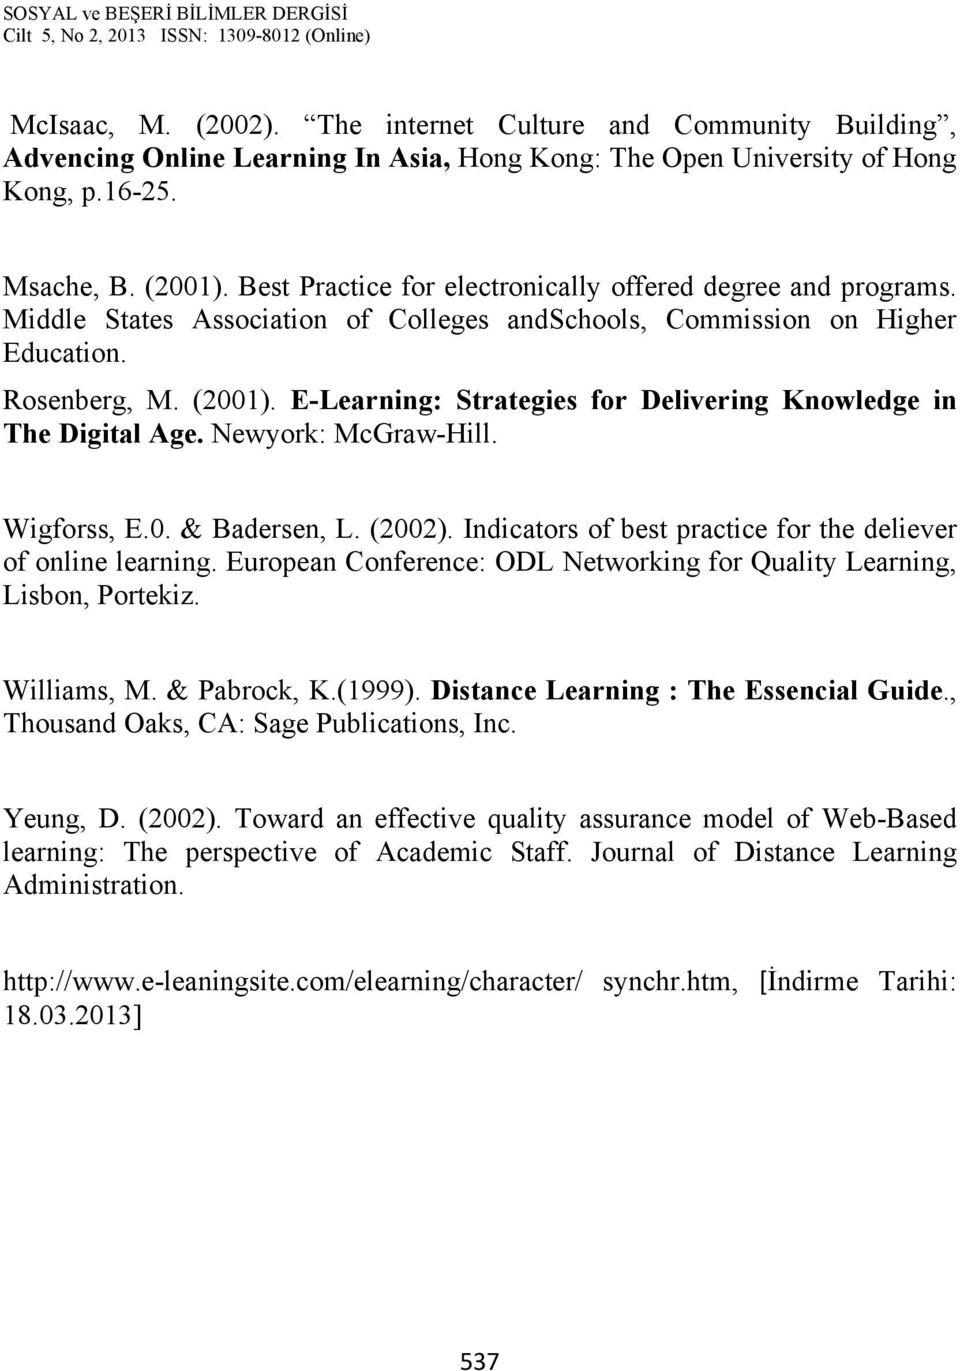 E-Learning: Strategies for Delivering Knowledge in The Digital Age. Newyork: McGraw-Hill. Wigforss, E.0. & Badersen, L. (2002). Indicators of best practice for the deliever of online learning.